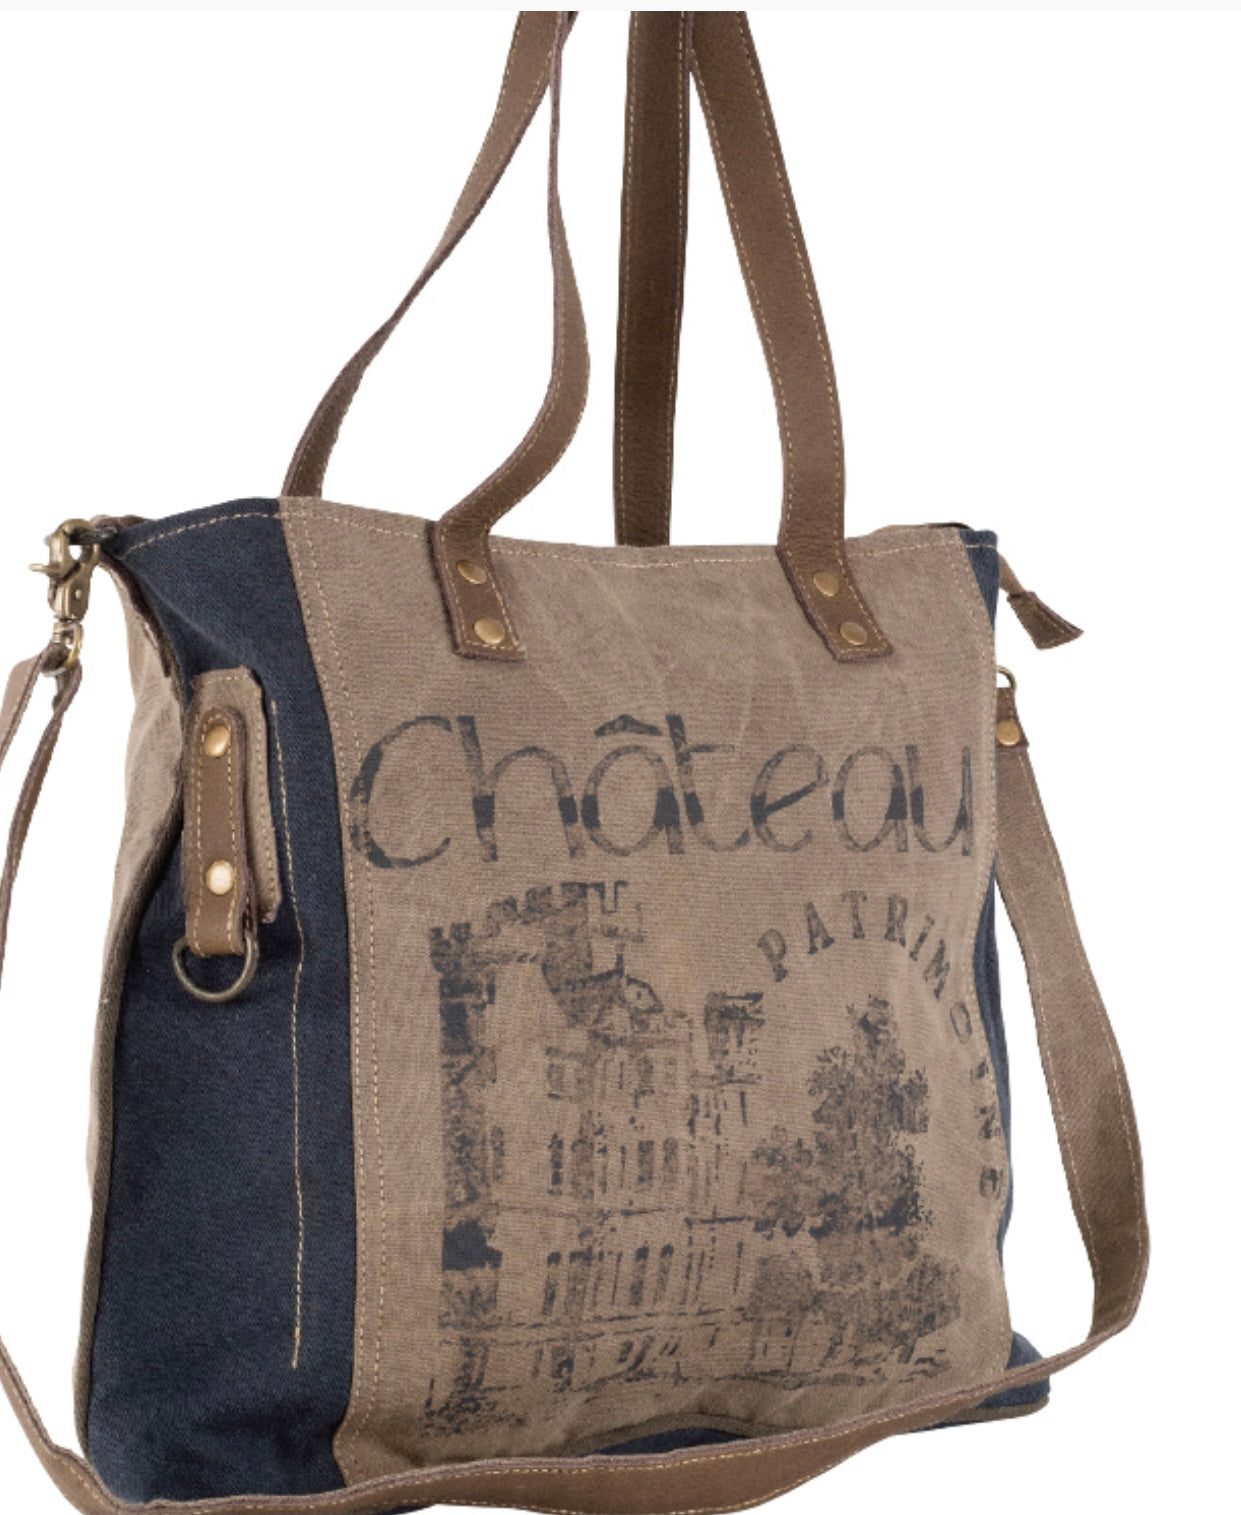 CHATEAU SHOULDER TOTE WITH STRAP - The Wall Kids, Inc.